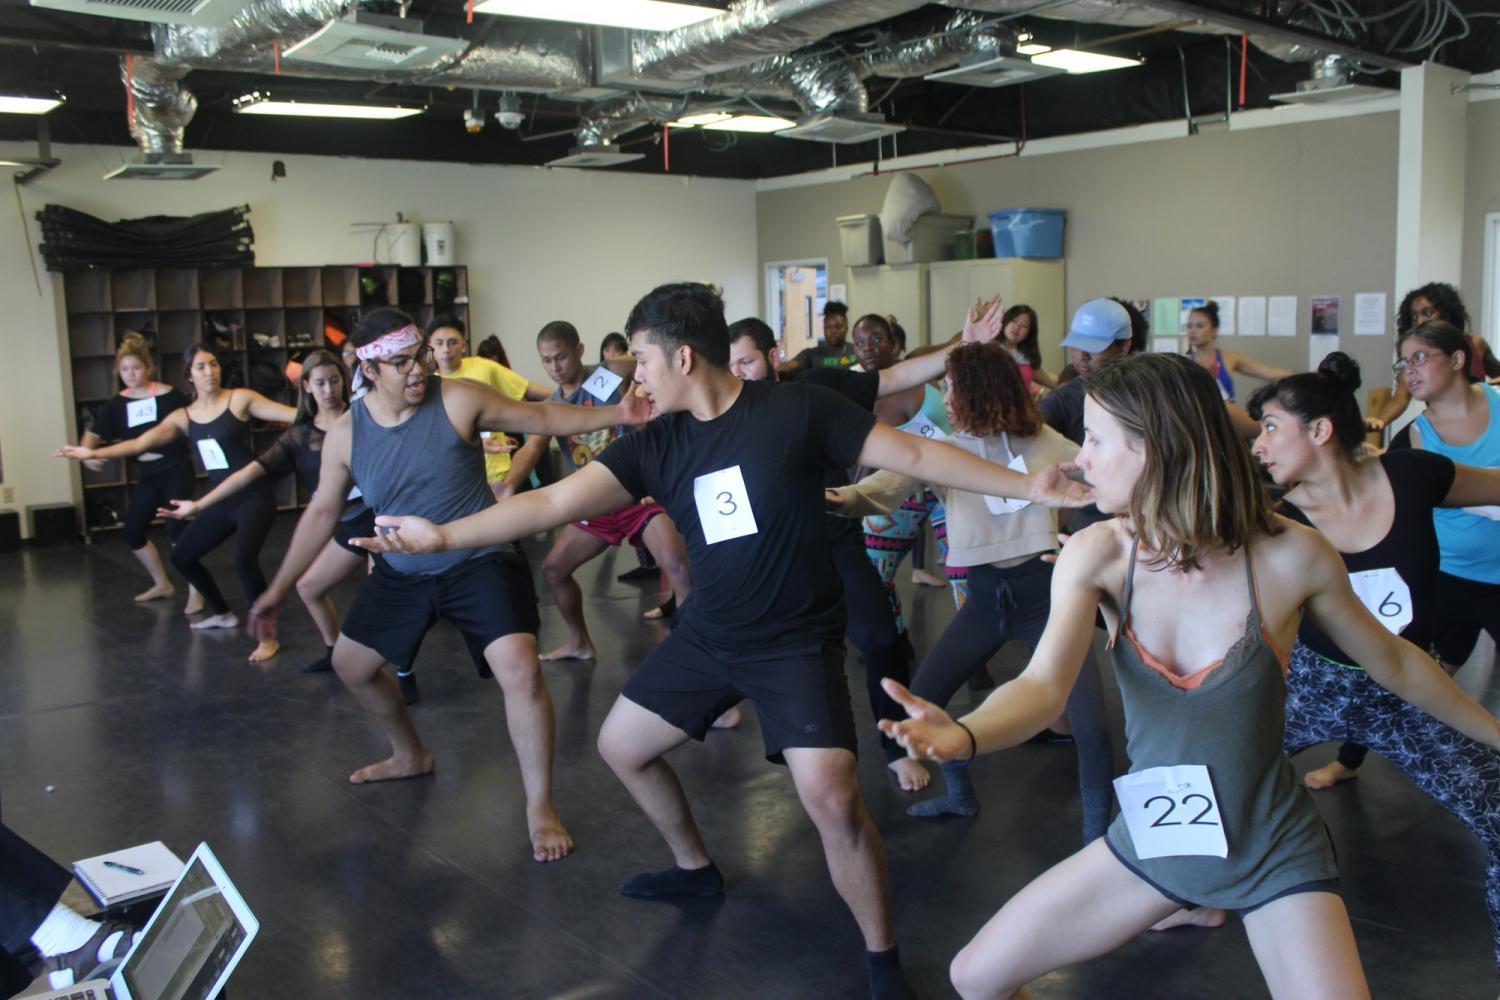 Steve Rosa (adjunct professor) teaching a combination to the auditioners. Students later performed it in groups. Photo credit: Rocio Valdez